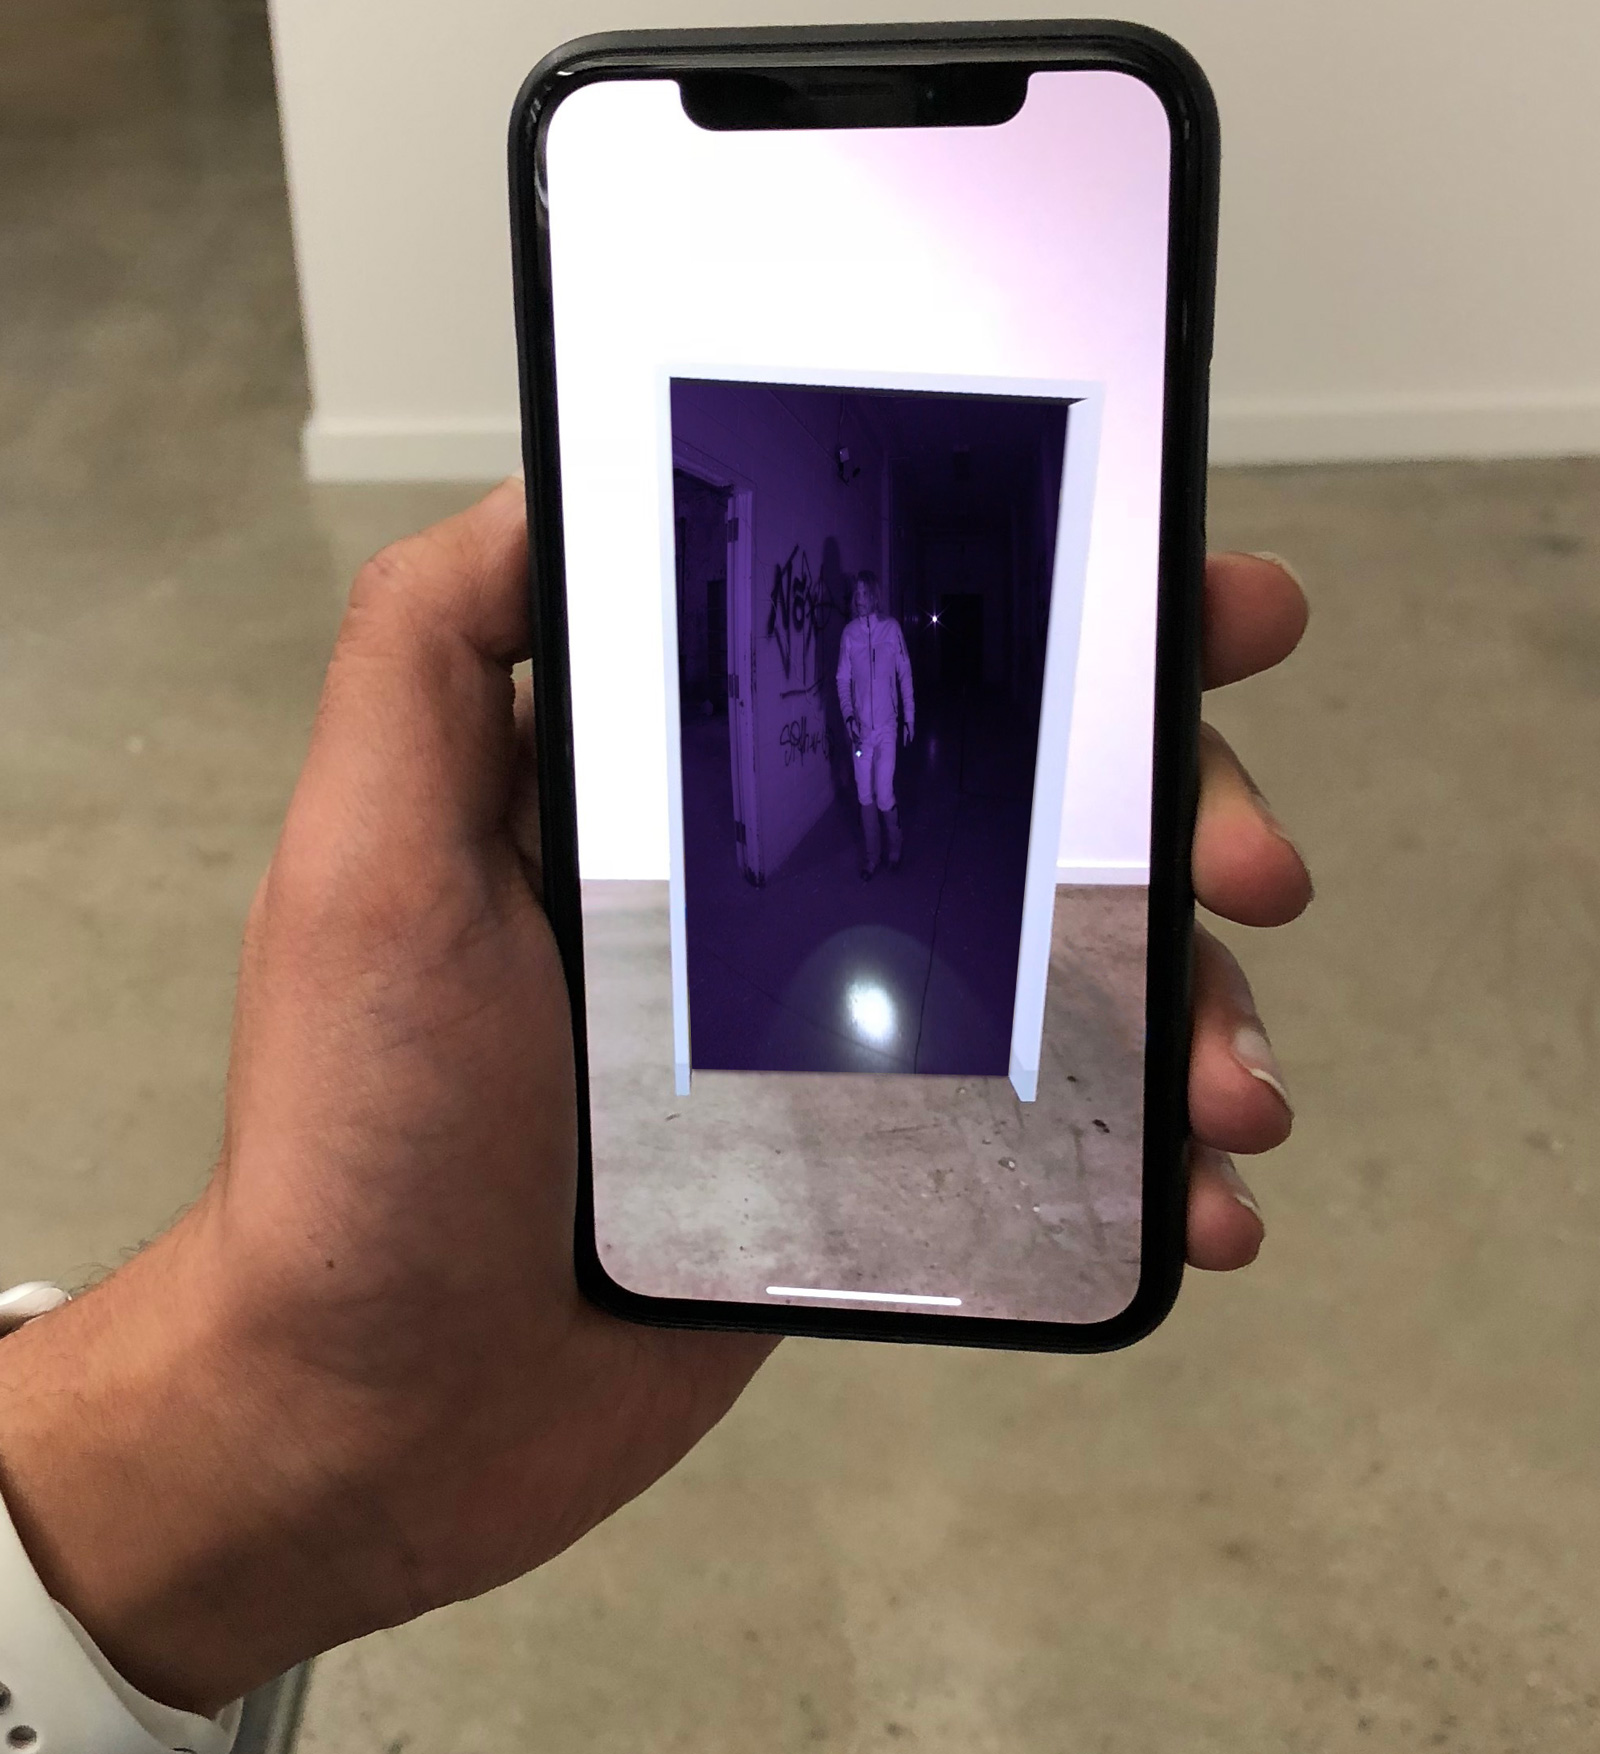 NextVR's augmented reality